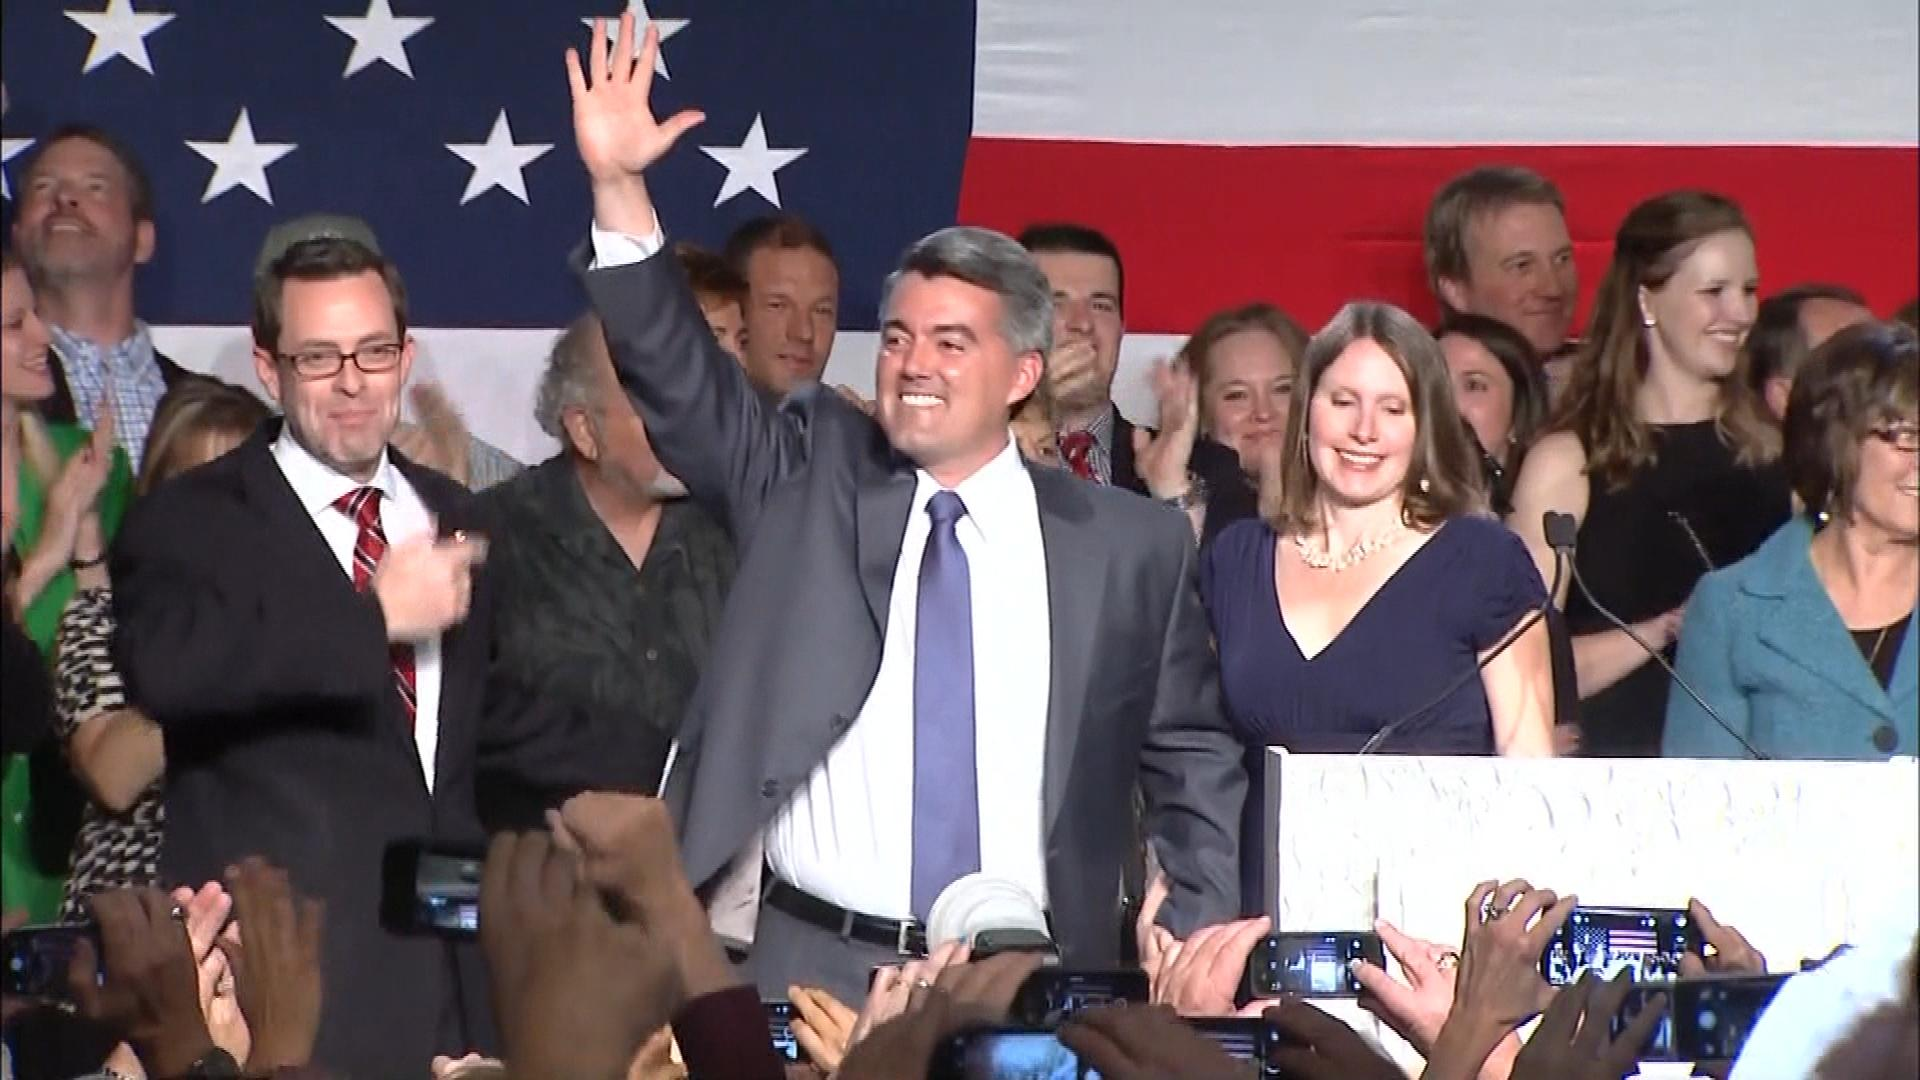 Cory Gardner delivers his acceptance speech (credit: CBS)